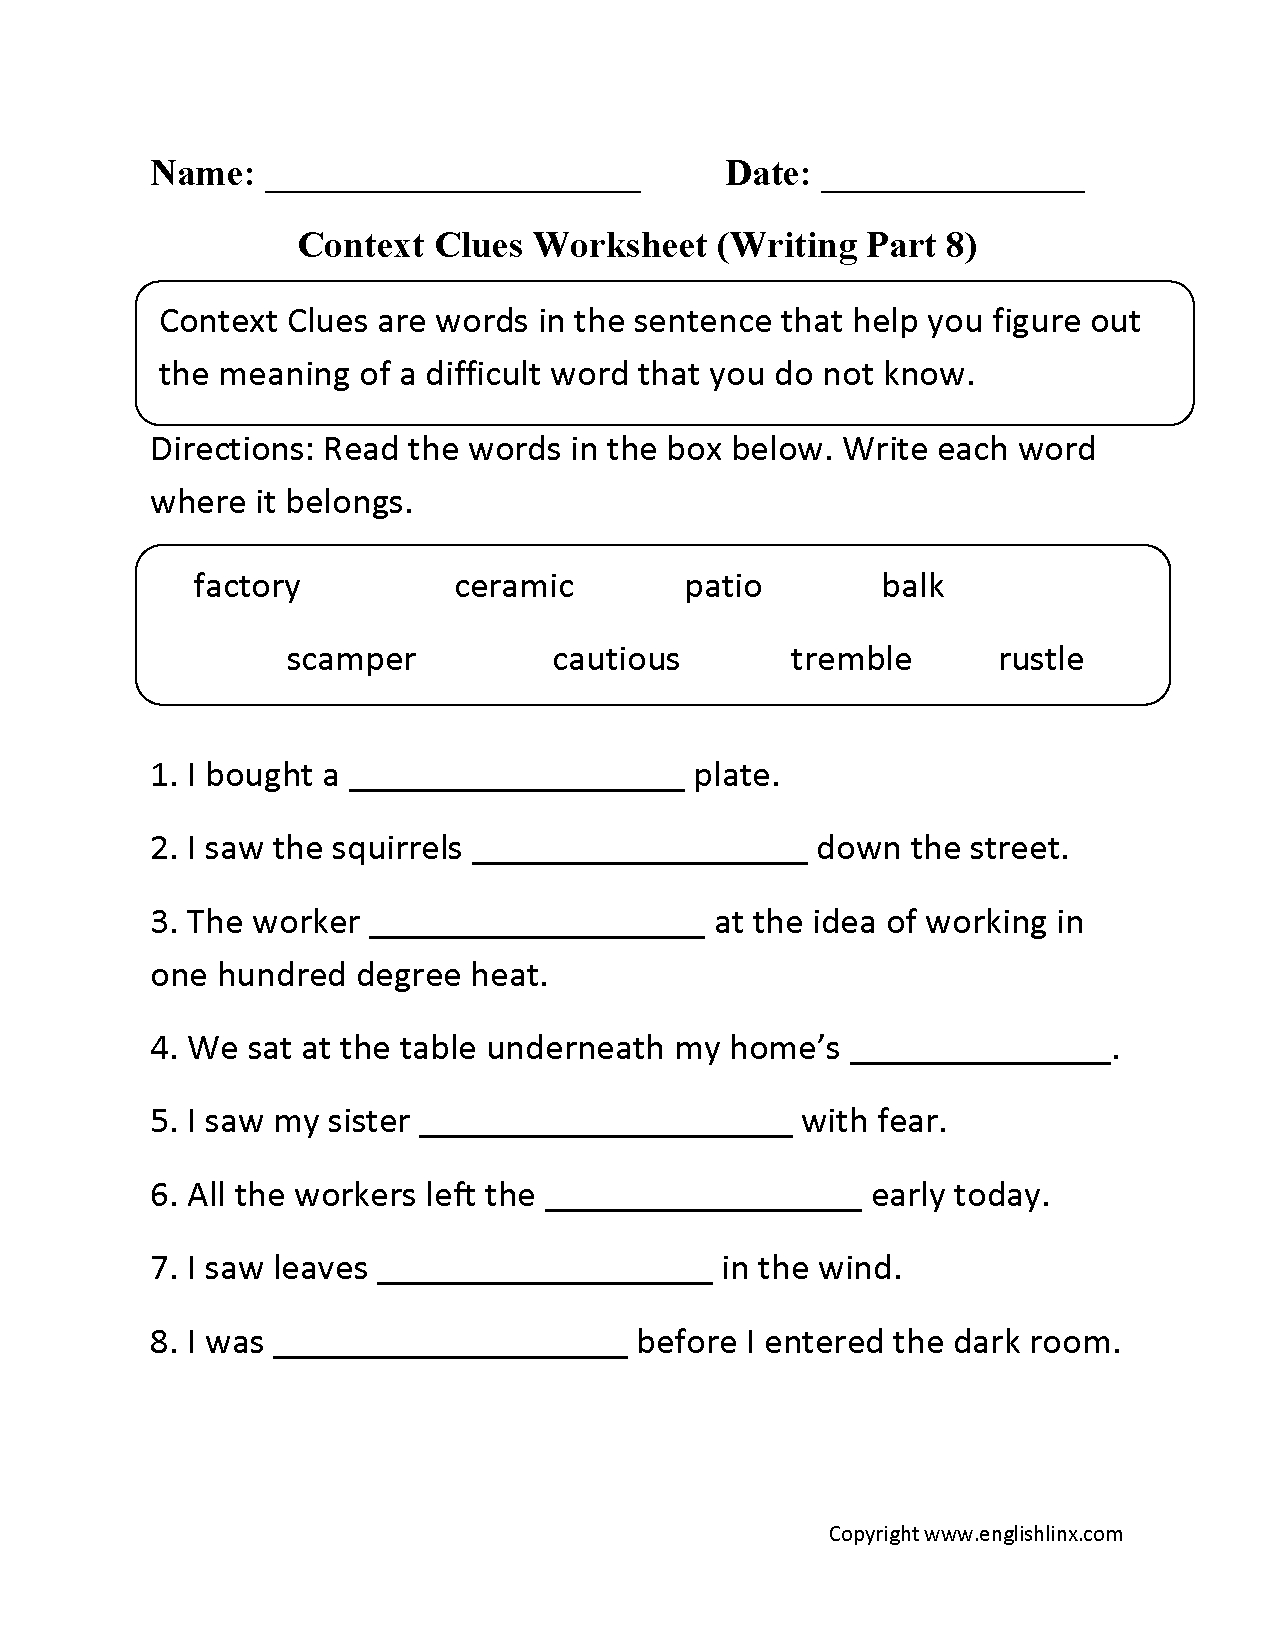 Practicing With Context Clues Worksheet